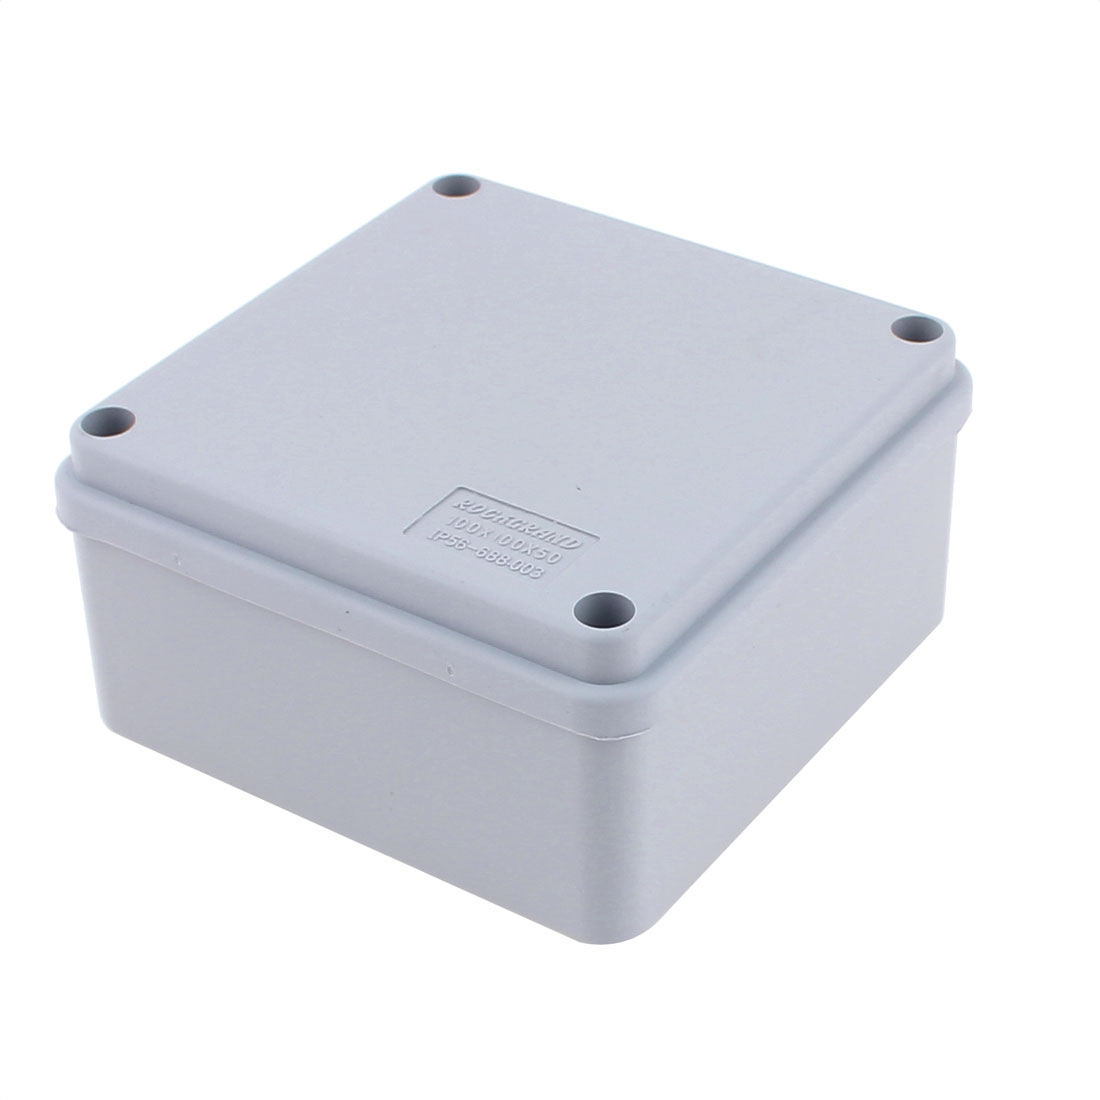 100 x 100 x 50mm Dustproof IP65 Junction Box DIY Sealed Connecting Box Enclosure